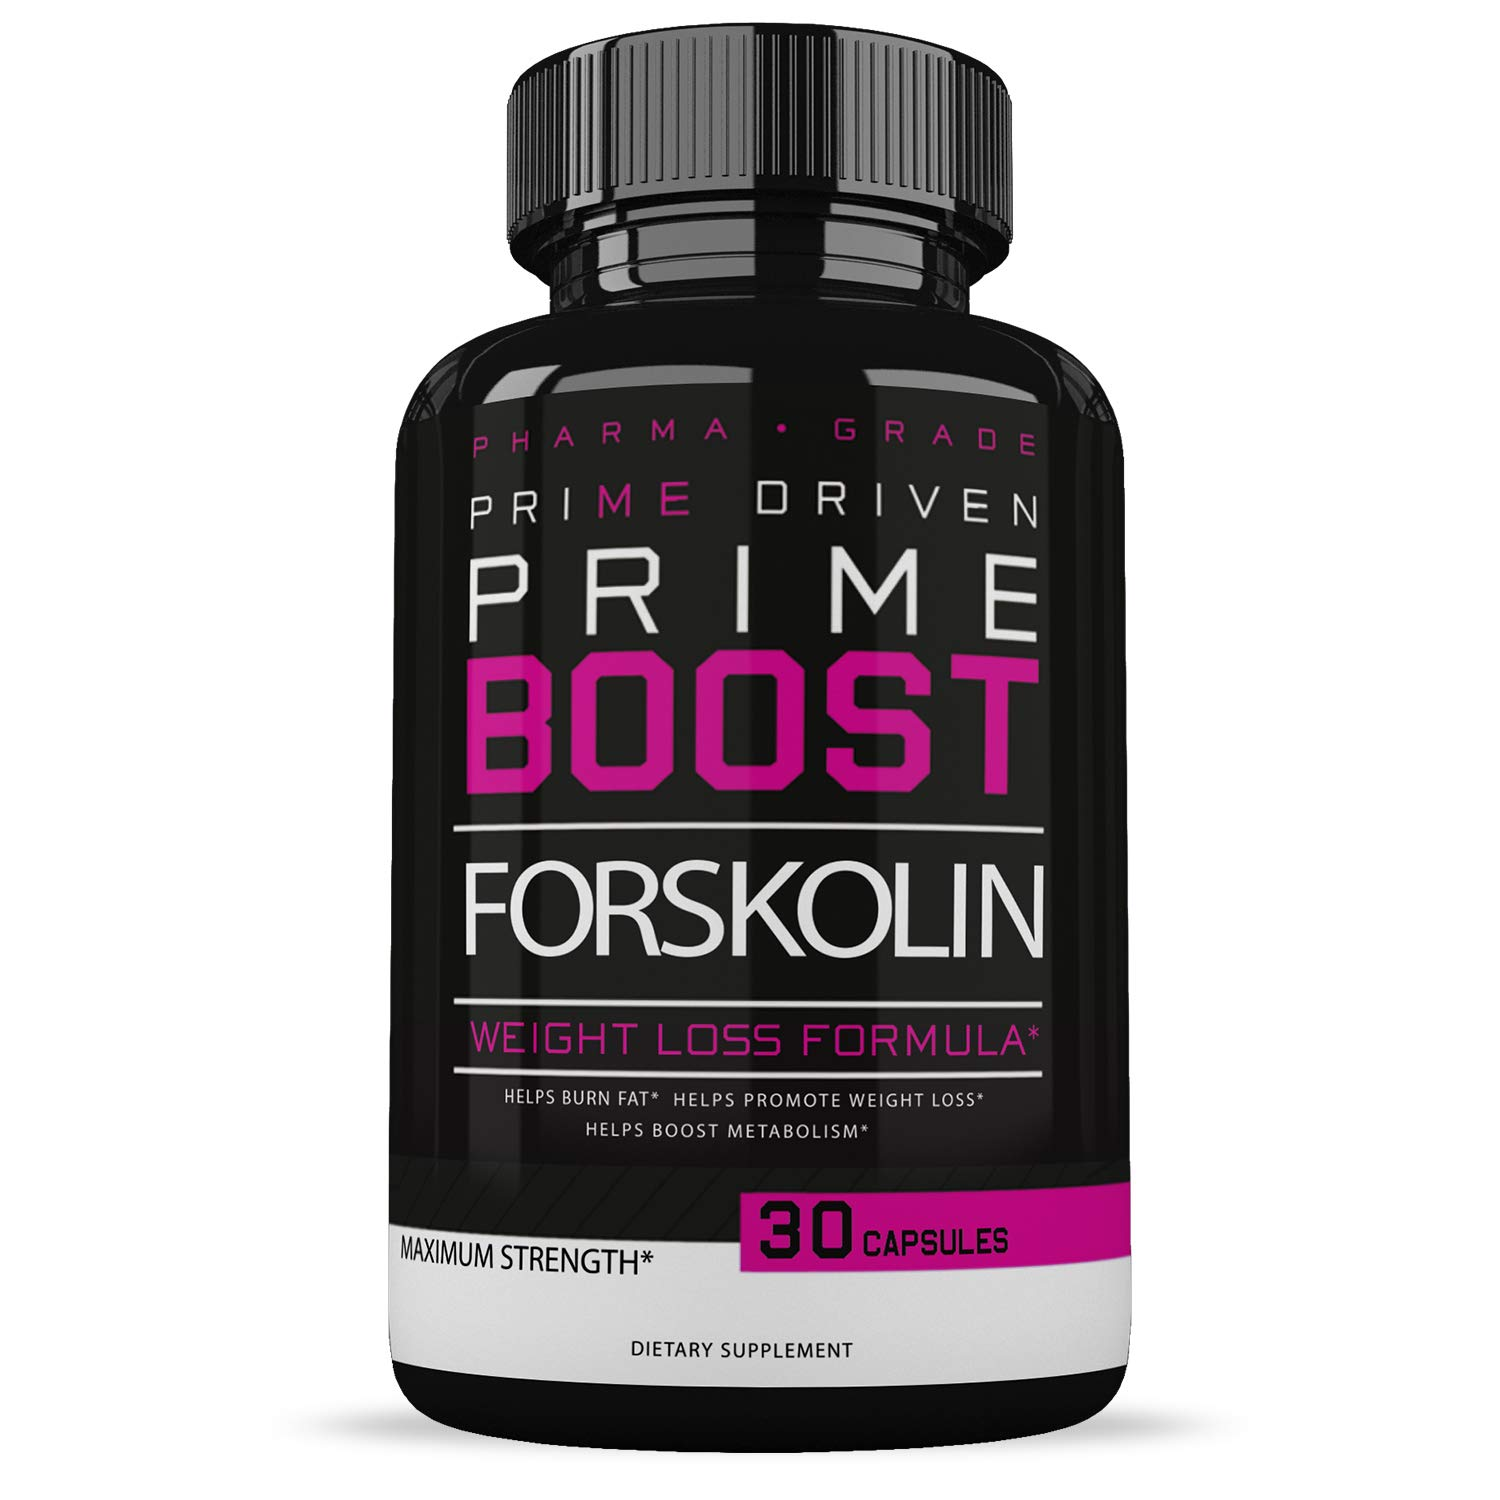 Forskolin Fat Burner - Weight Loss Supplements for Women & Men - Appetite Suppressant - Carb Blocker - 30 Capsules